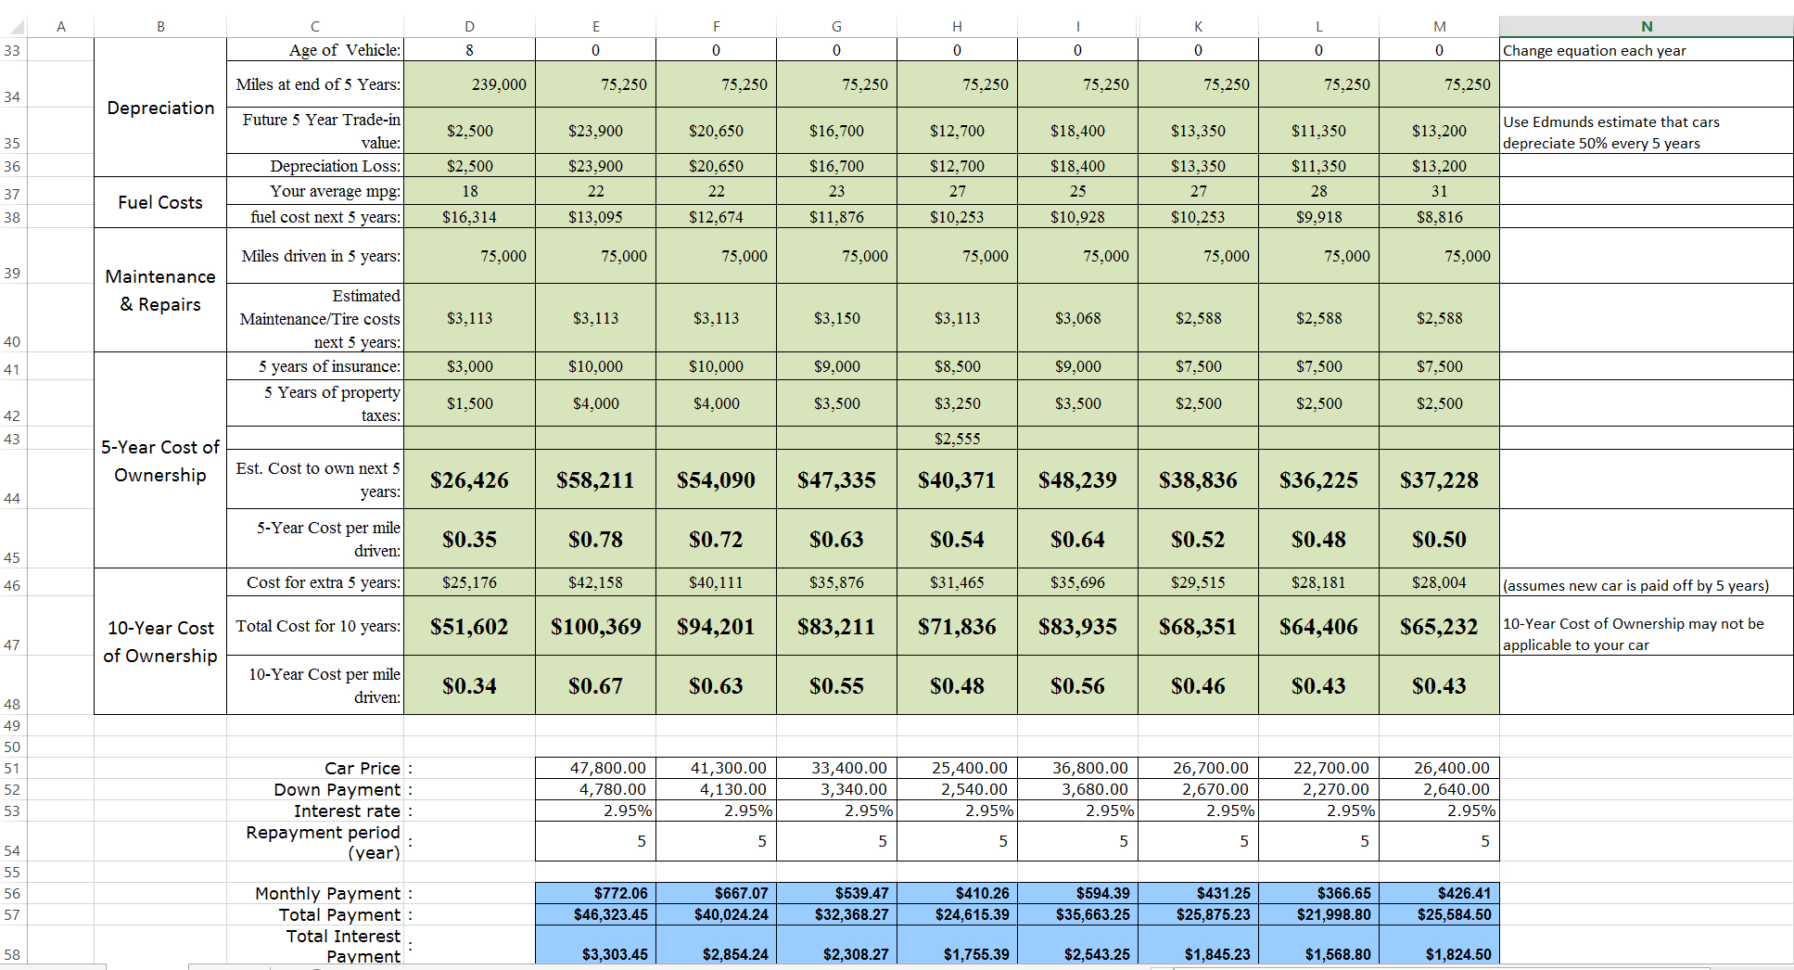 Energy Savings Calculator Spreadsheet For Car Cost Comparison Tool For Excel